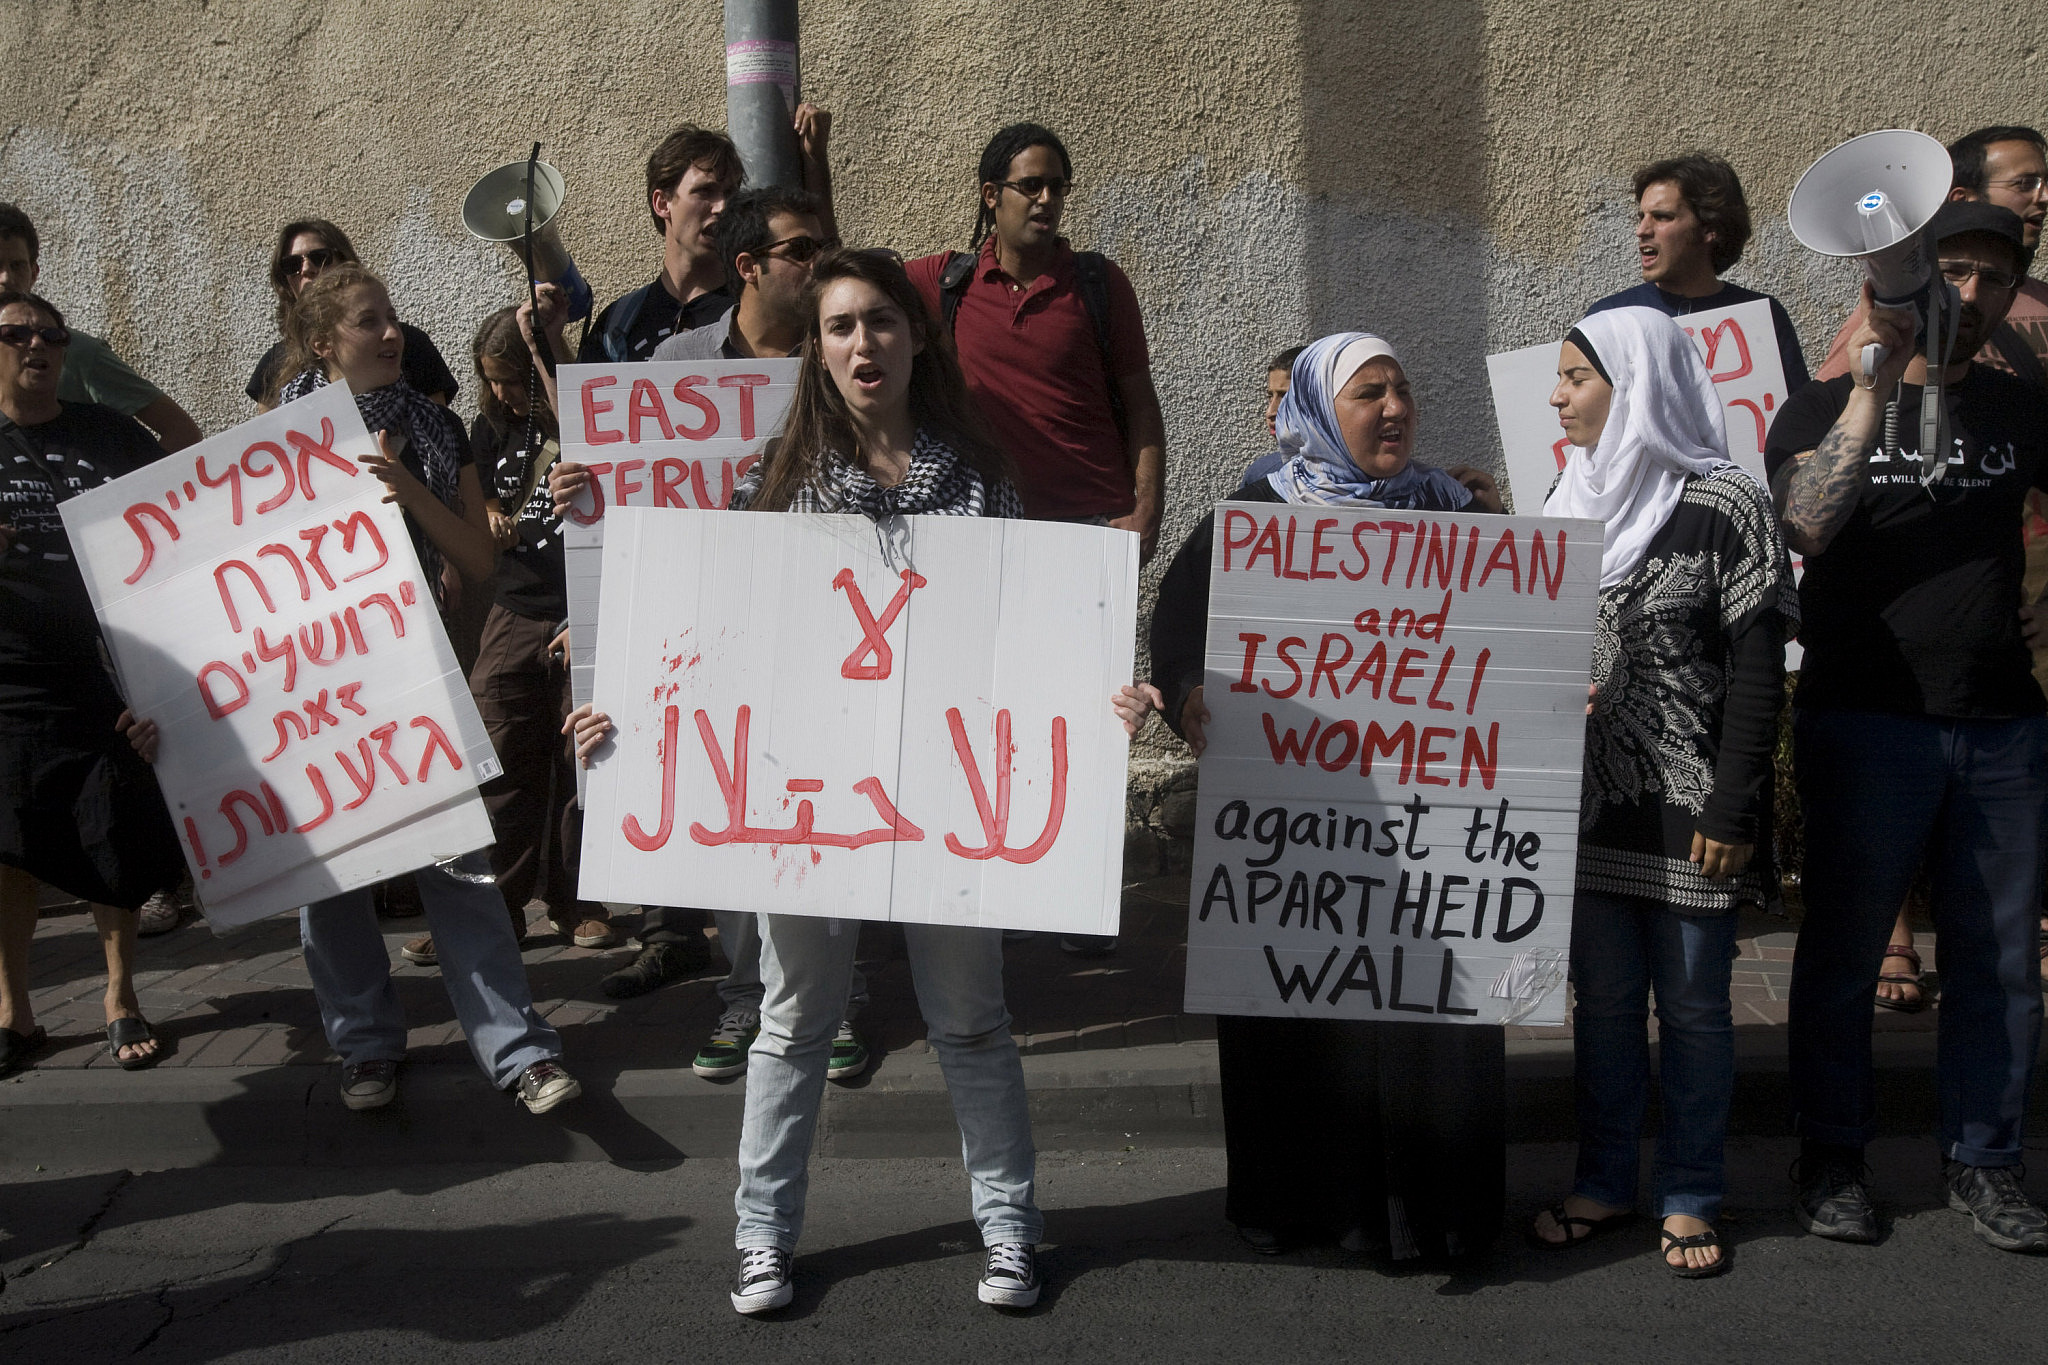 Israeli and Palestinian protesters hold signs during a demonstration against evictions and settlements in Sheikh Jarrah, East Jerusalem, May 14, 2010. (Oren Ziv/Activestills.org)